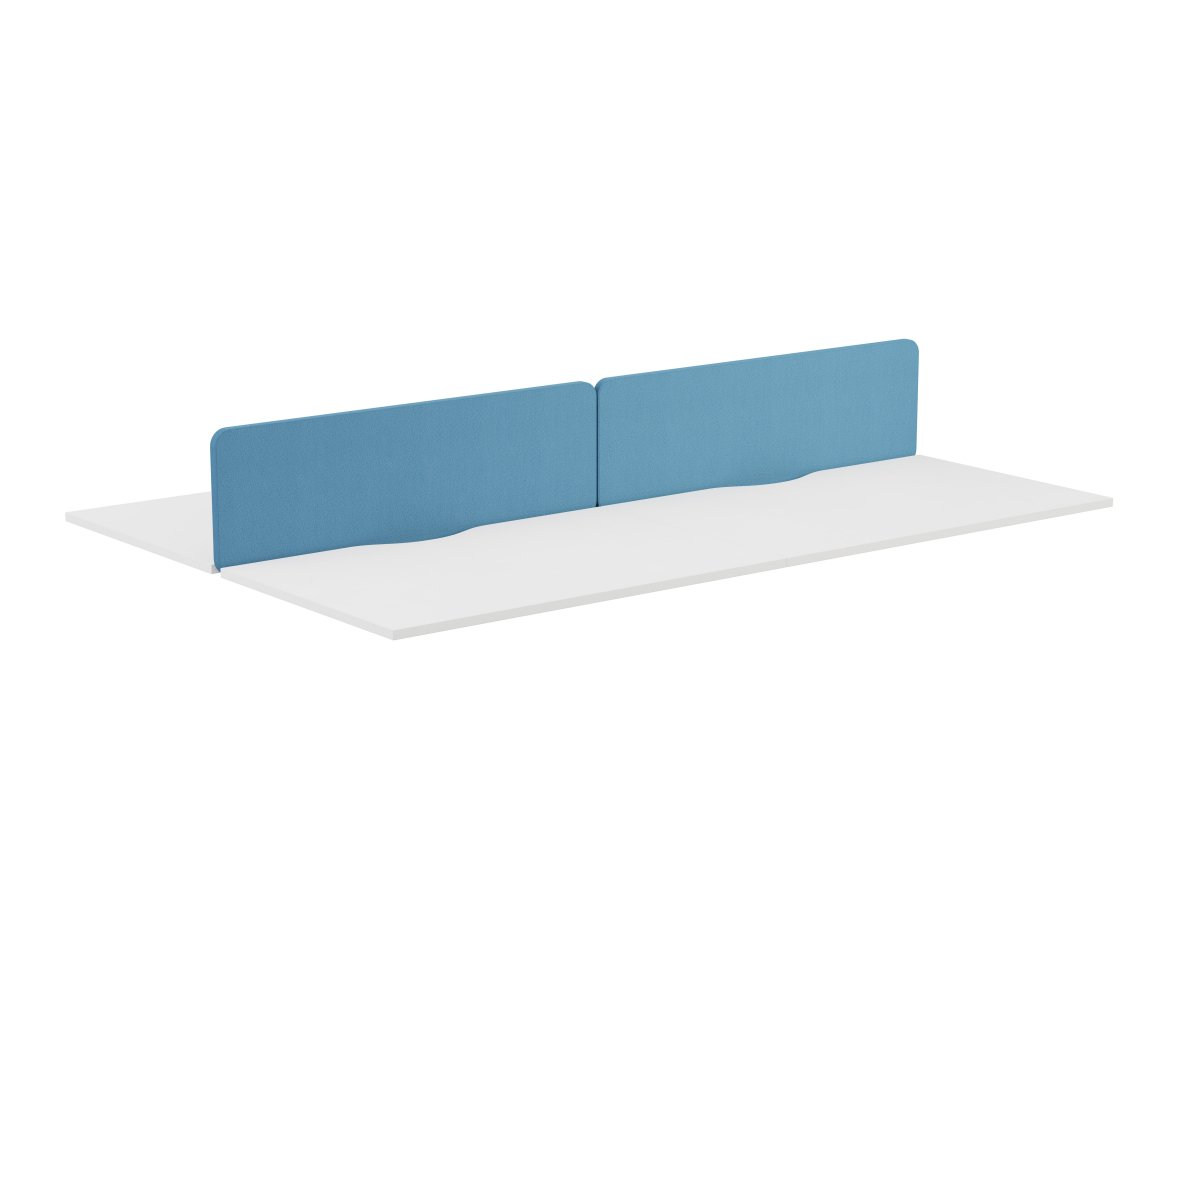 Elco Straight Screen - 1200W X 380H Band 2